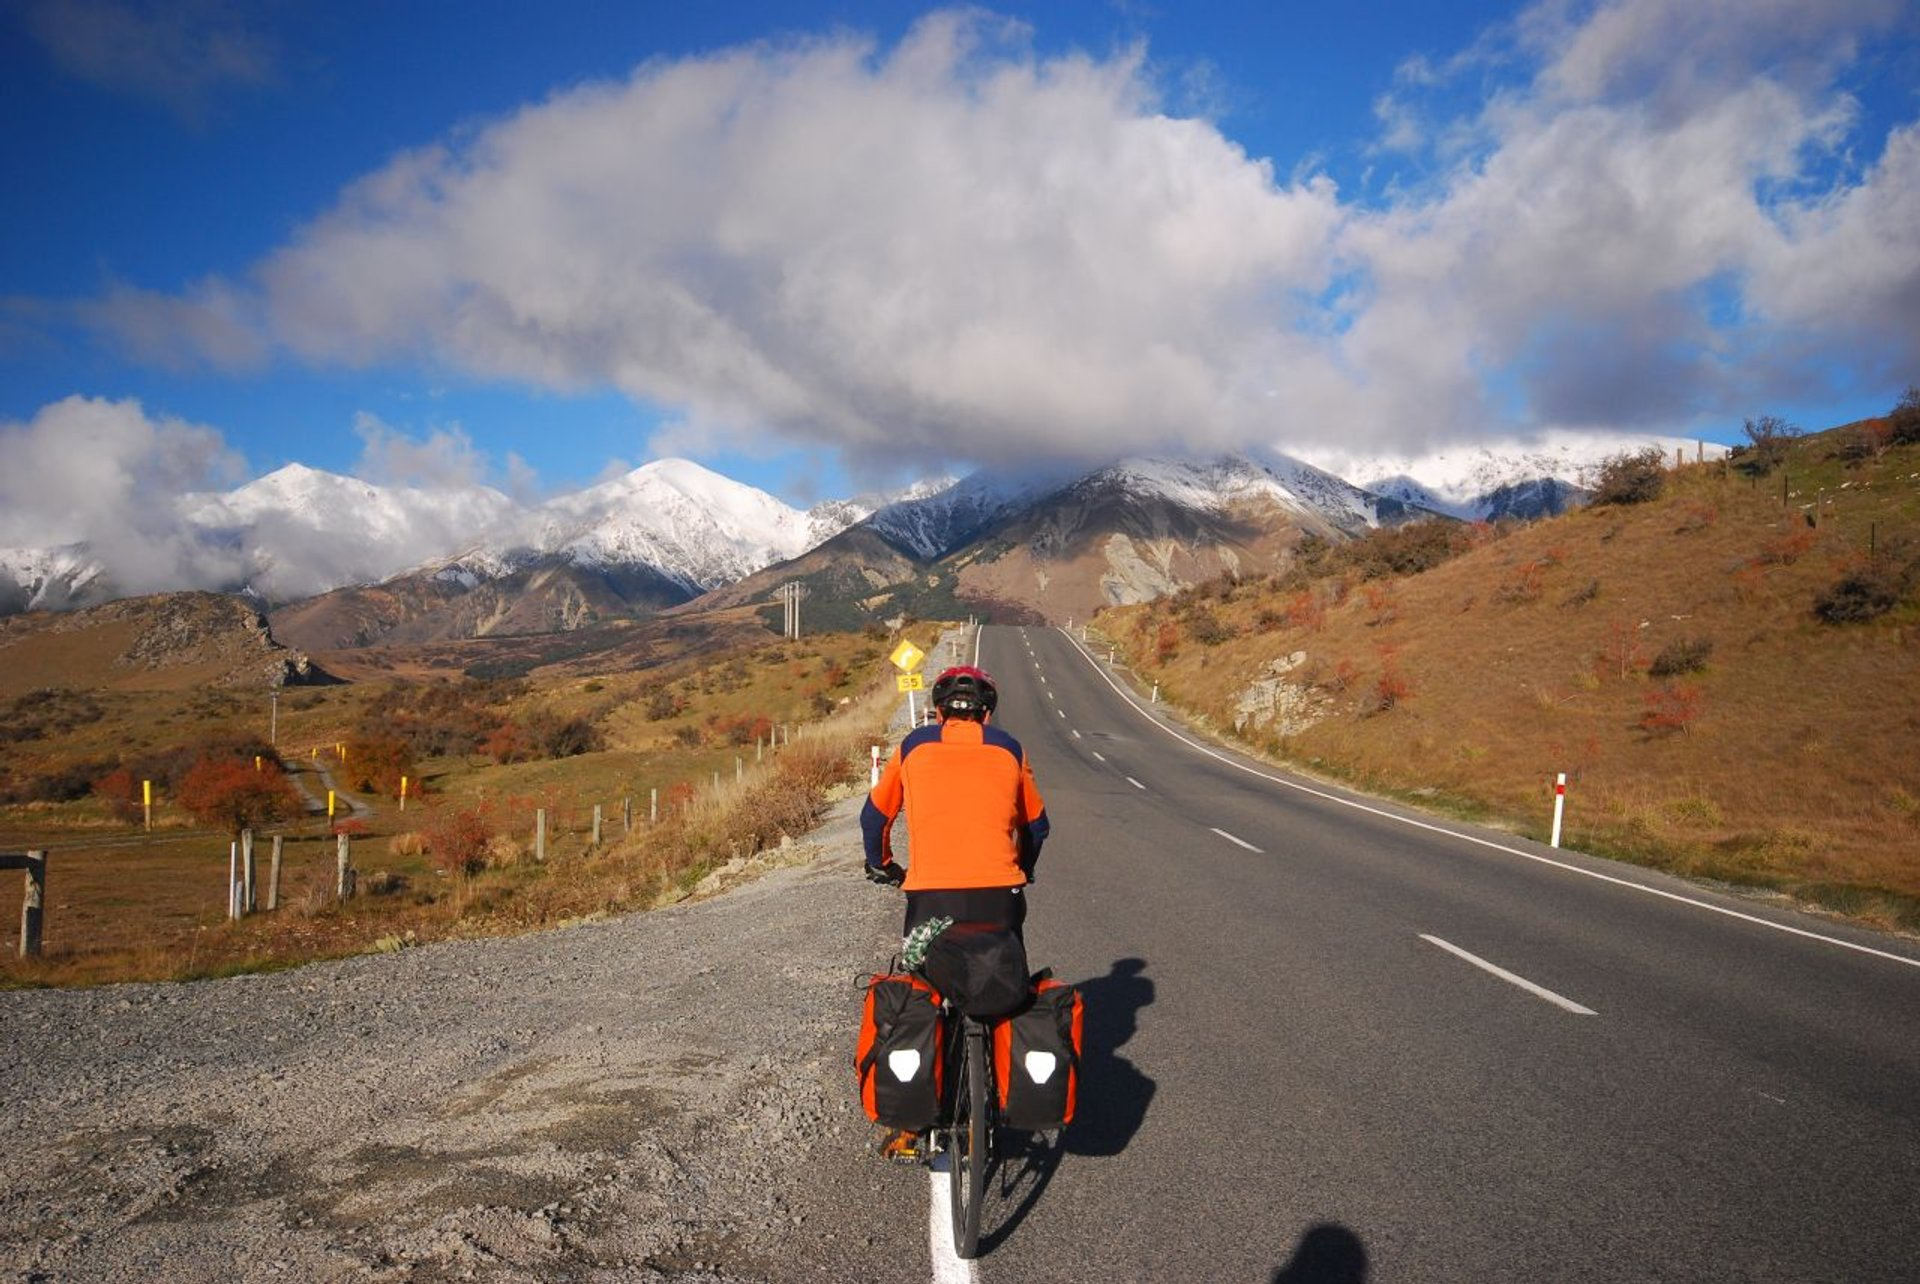 Biking in New Zealand 2020 - Best Time